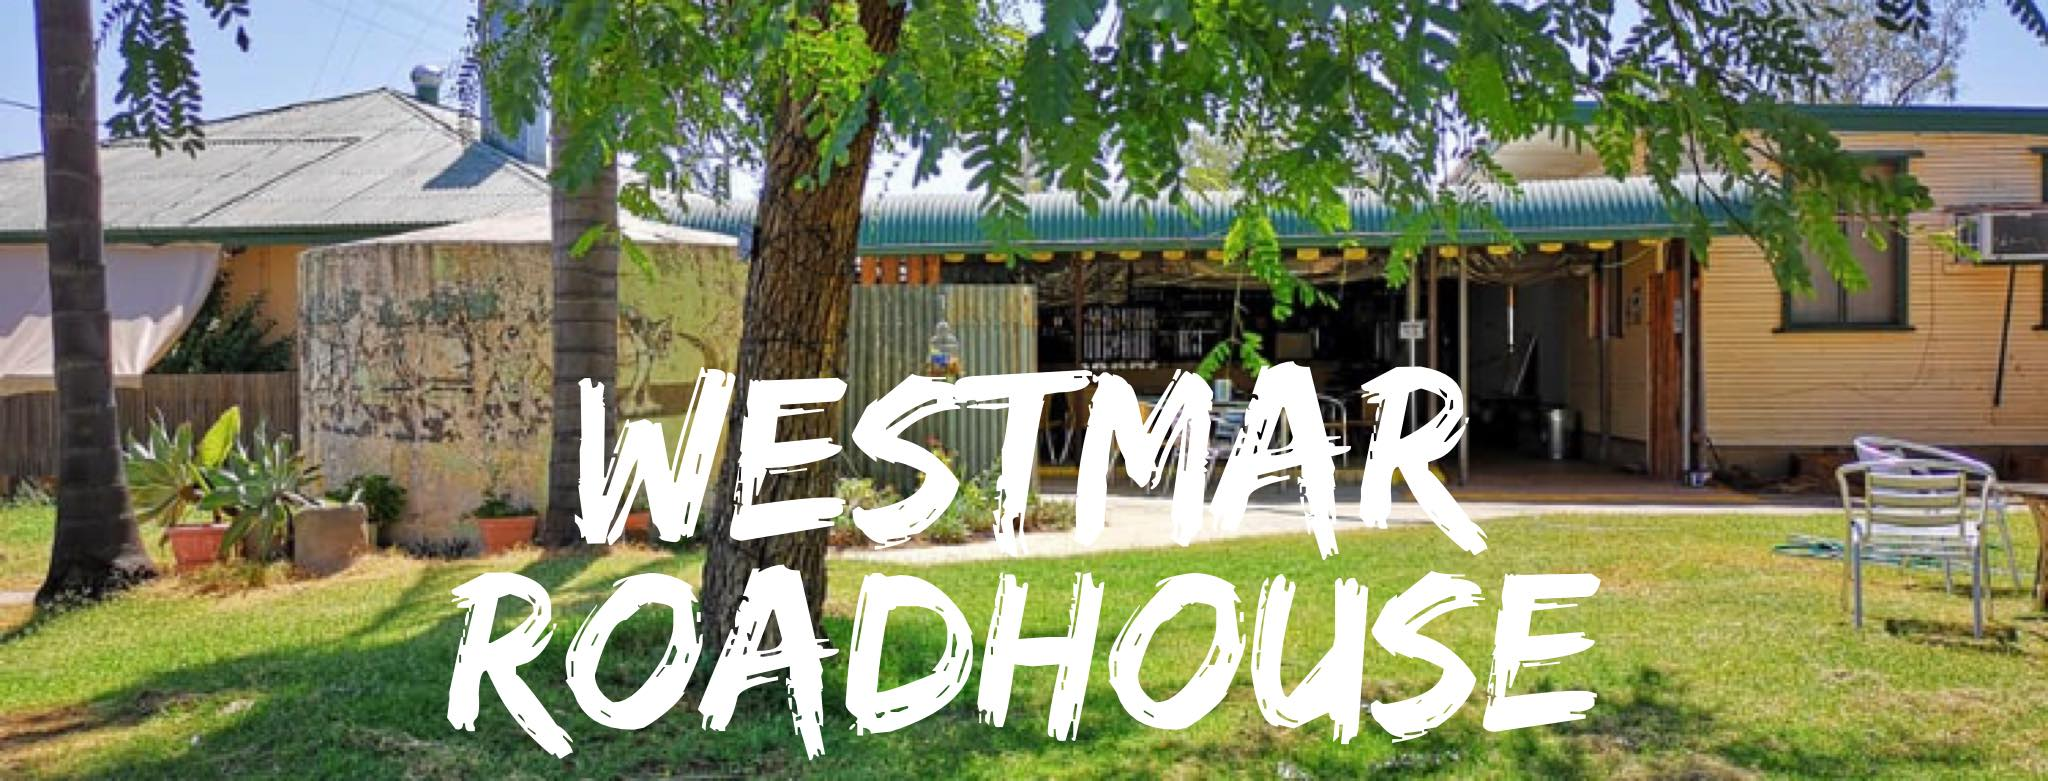 Westmar roadhouse image